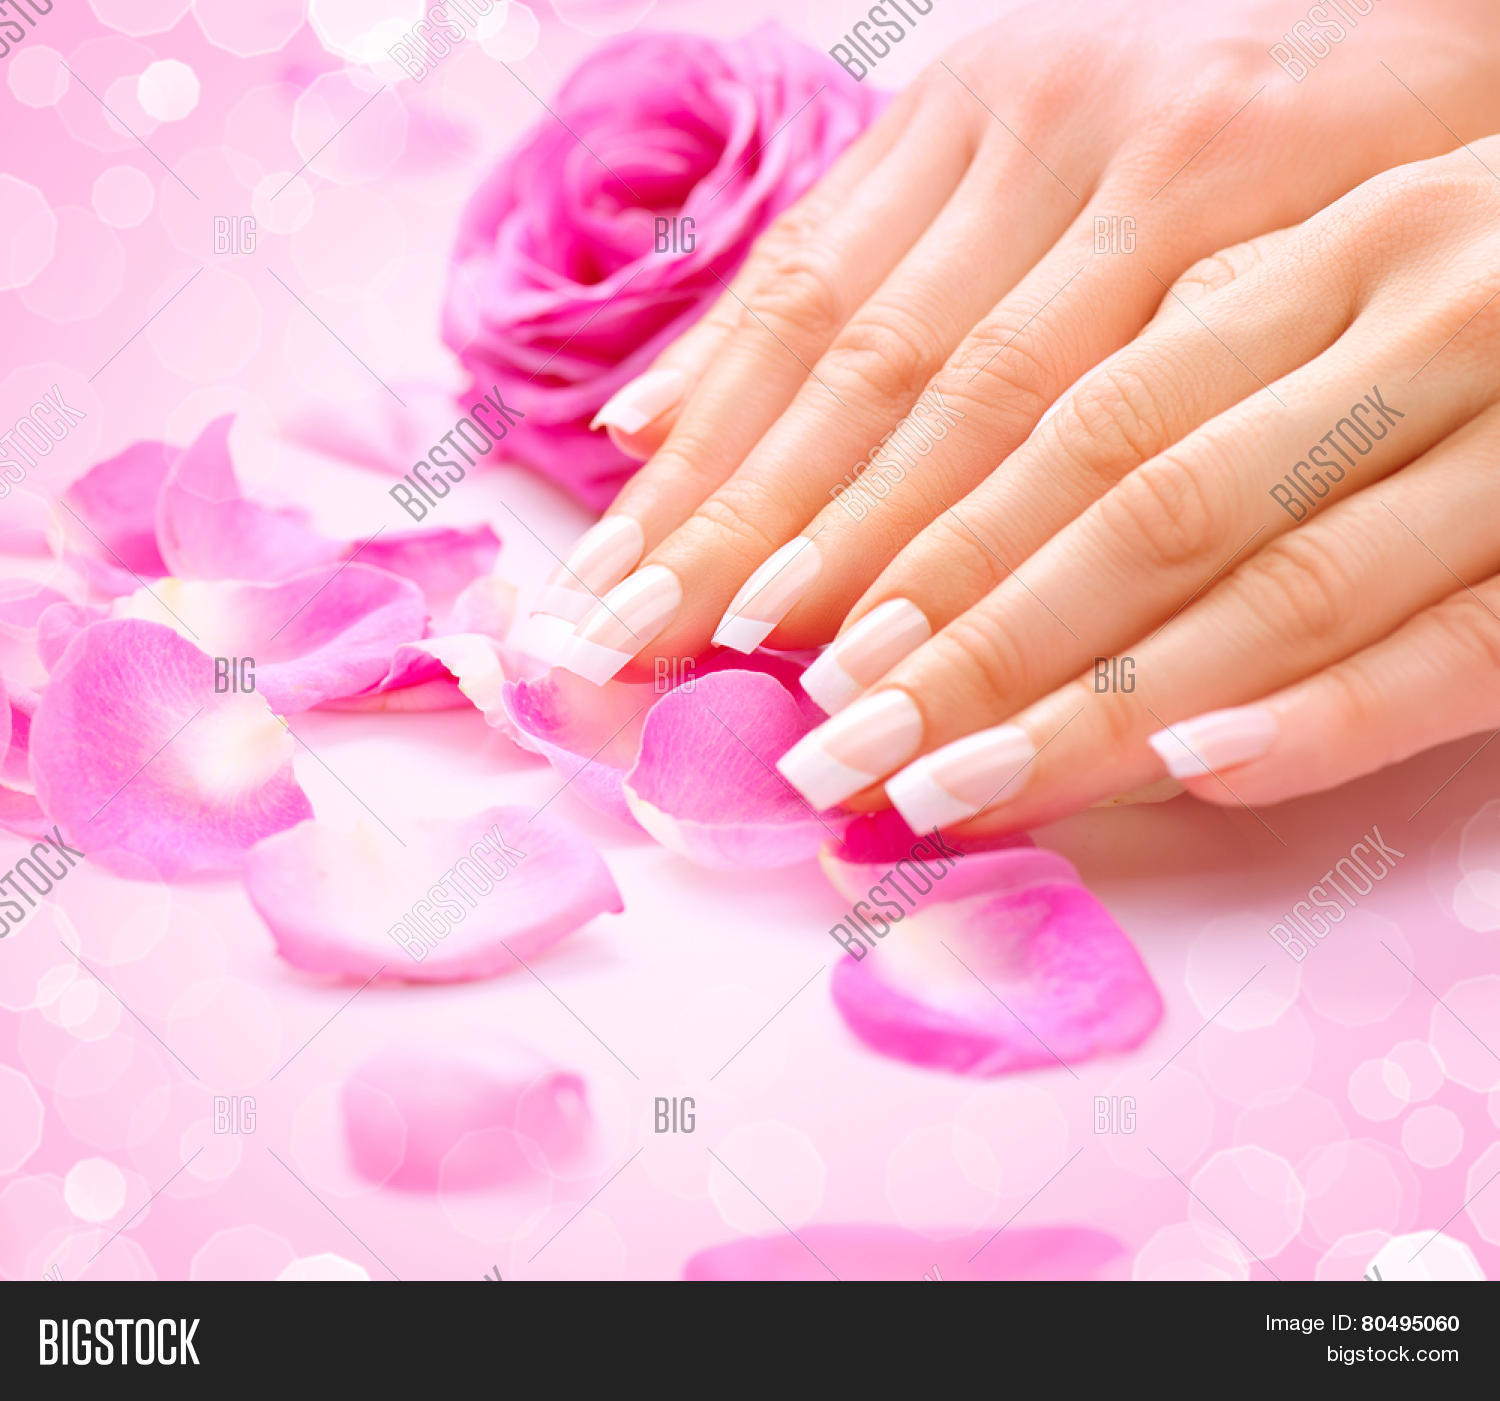 Free Manicure Beauty Hands Makeover: Manicure, Hands Spa Image & Photo (Free Trial)